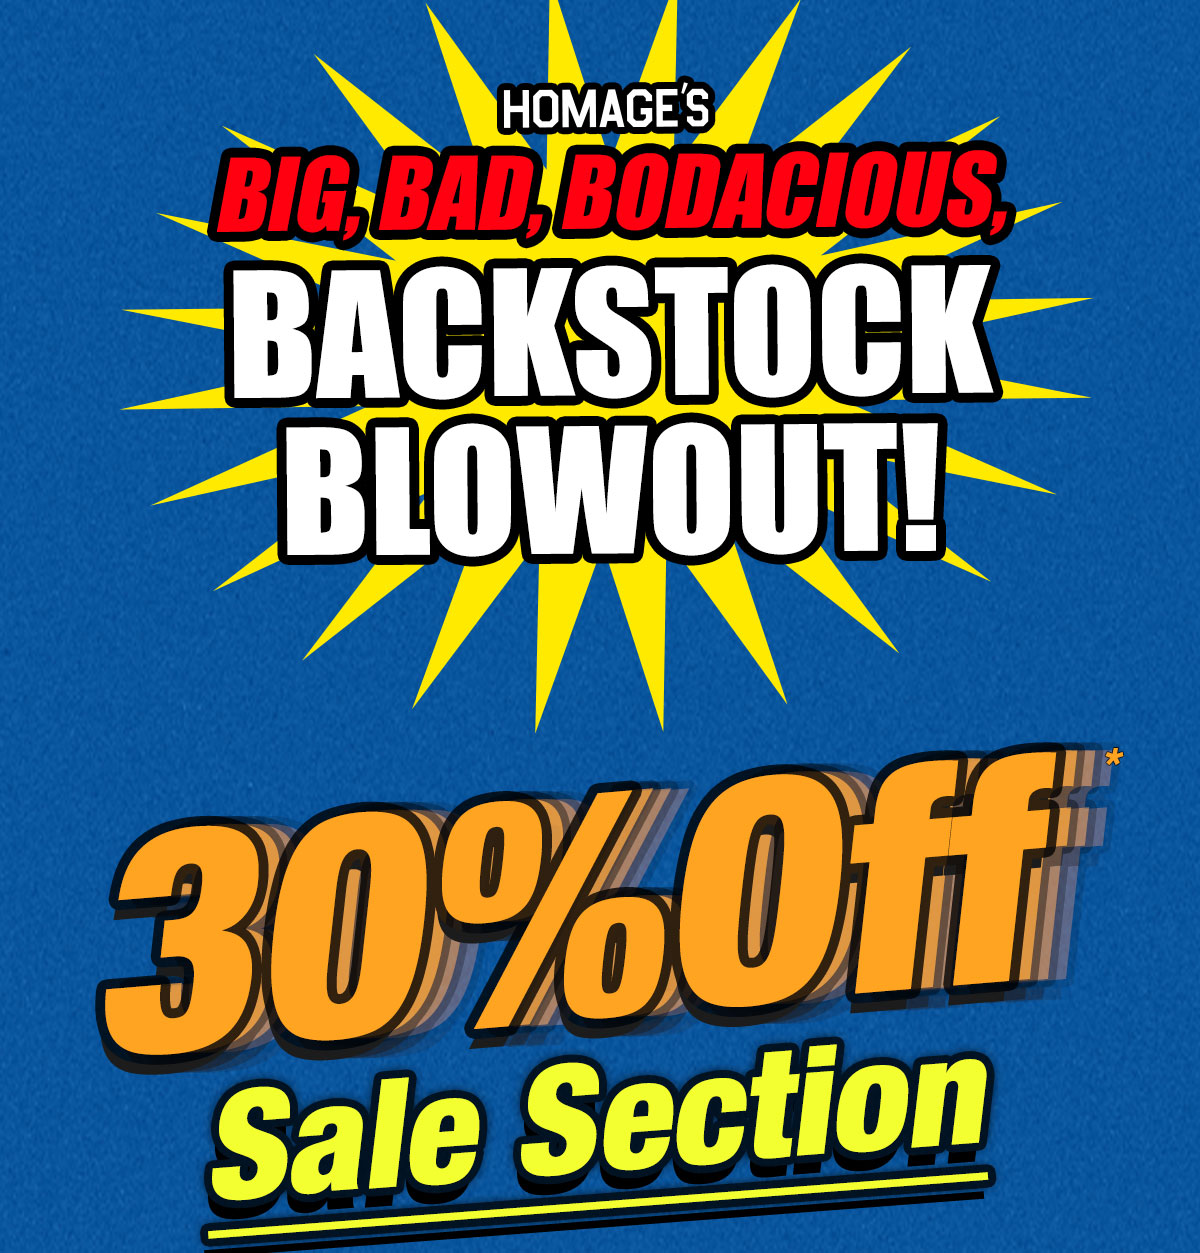 Homage's Big, Bad, Bodacious, BACKSTOCK BLOWOUT! 30% Off* Sale Section